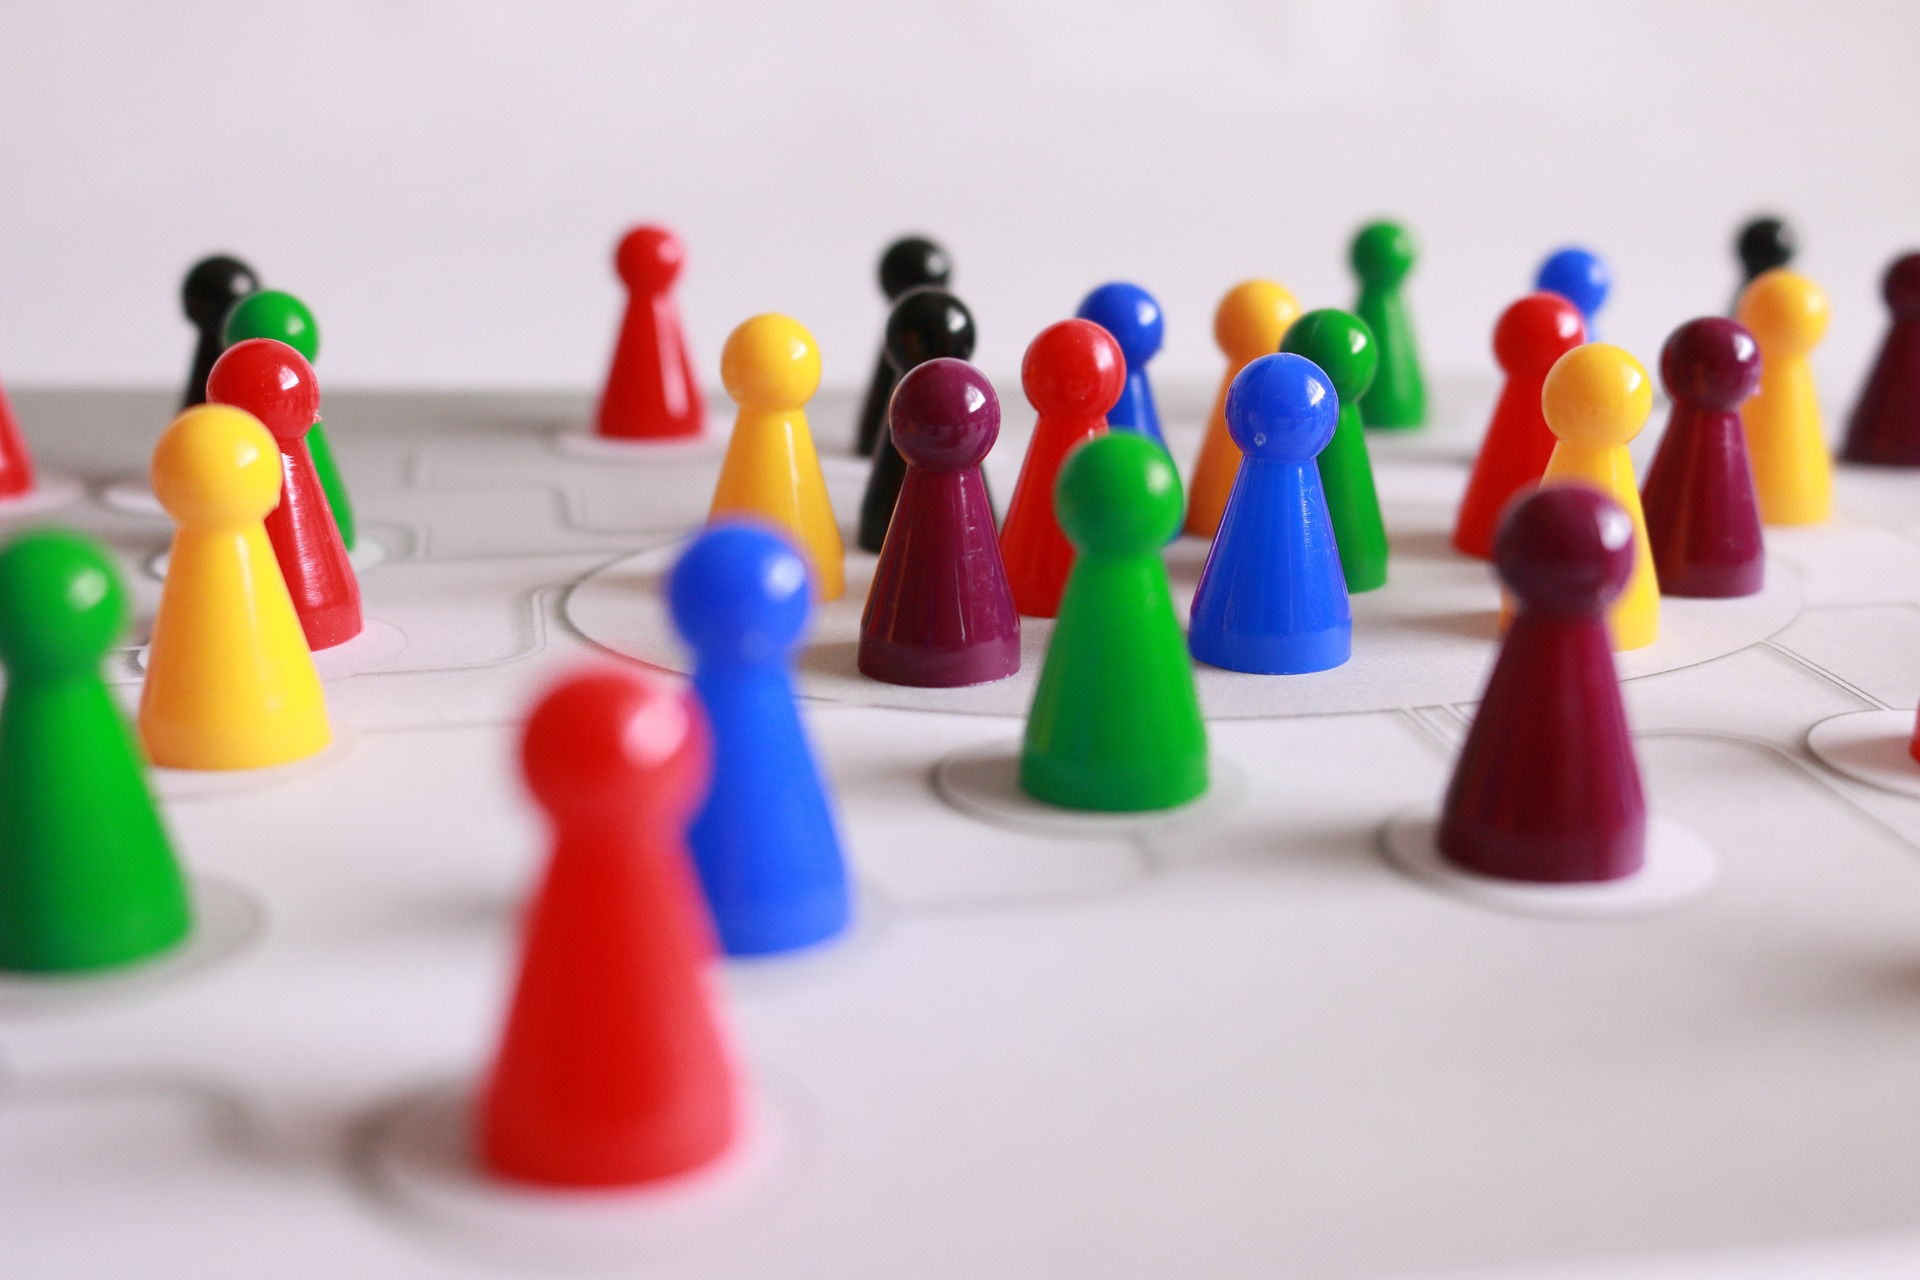 They believe a diverse and inclusive workplace will be the driven force to make every organisations success